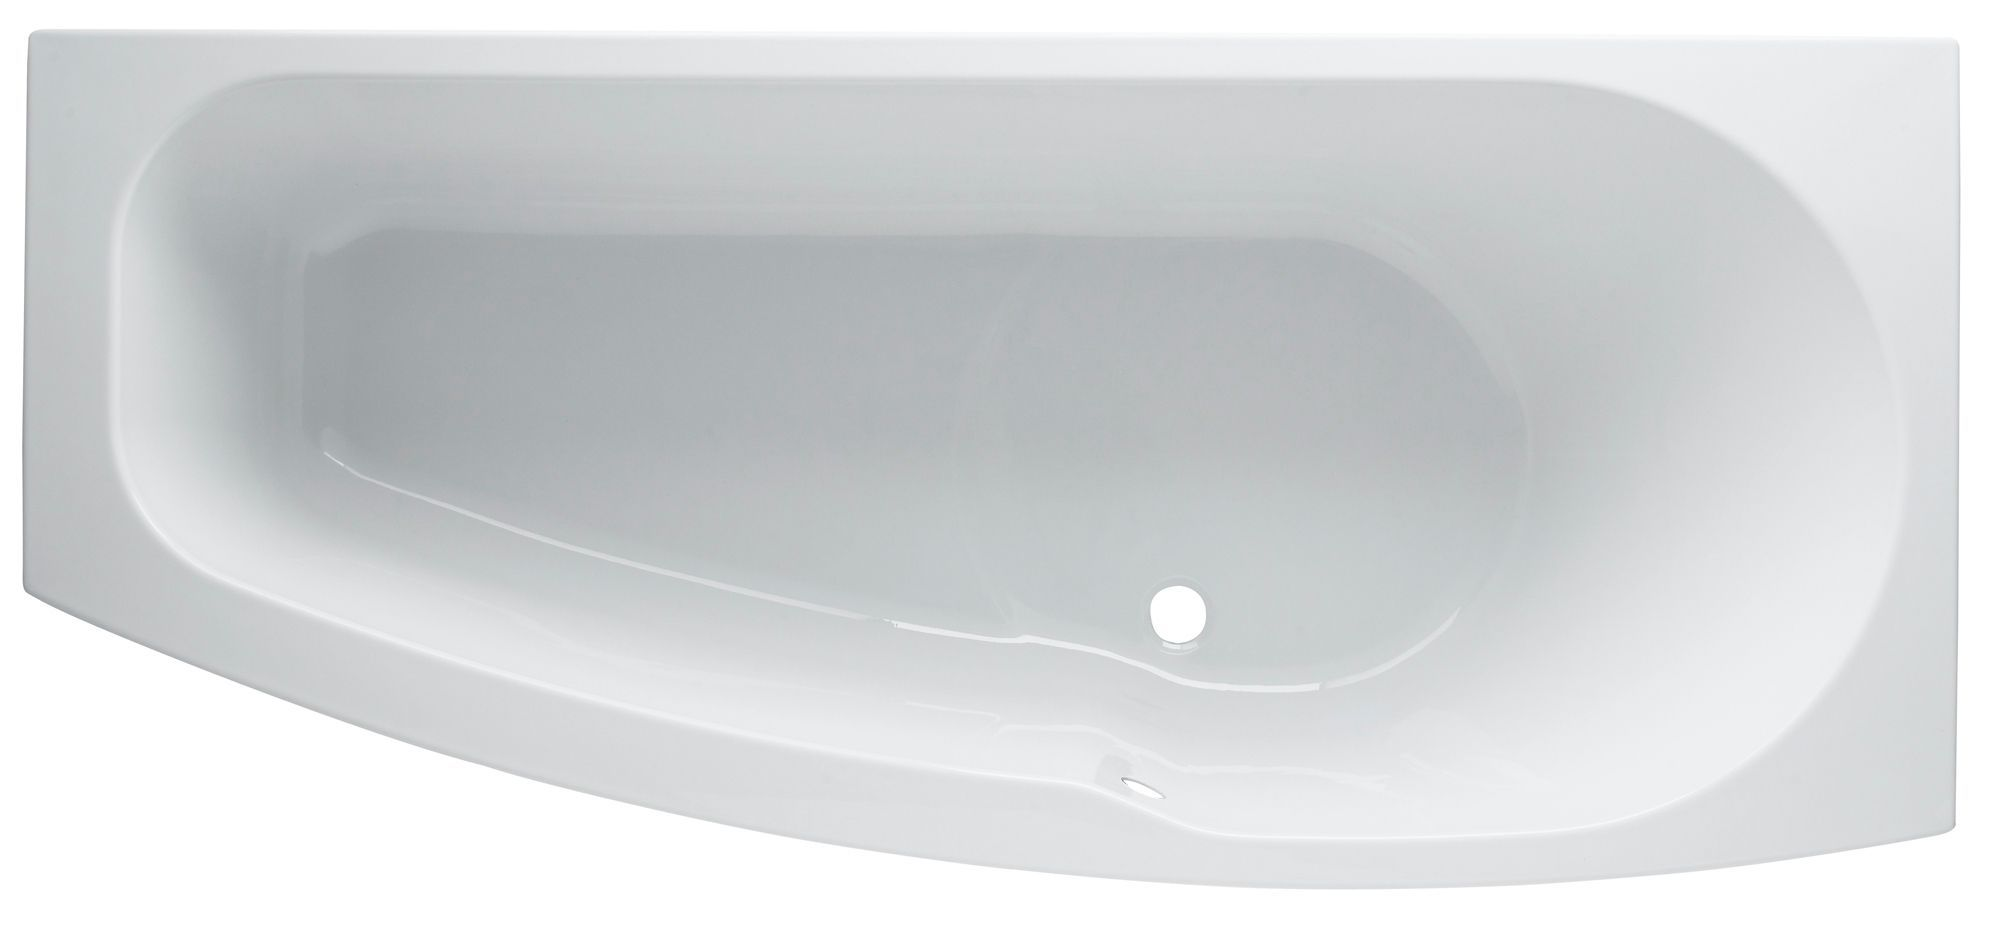 B and q cooke and lewis bathrooms - Cooke Lewis Perdita Rh Acrylic Pear Shower Bath L 1695mm W 750mm Departments Diy At B Q